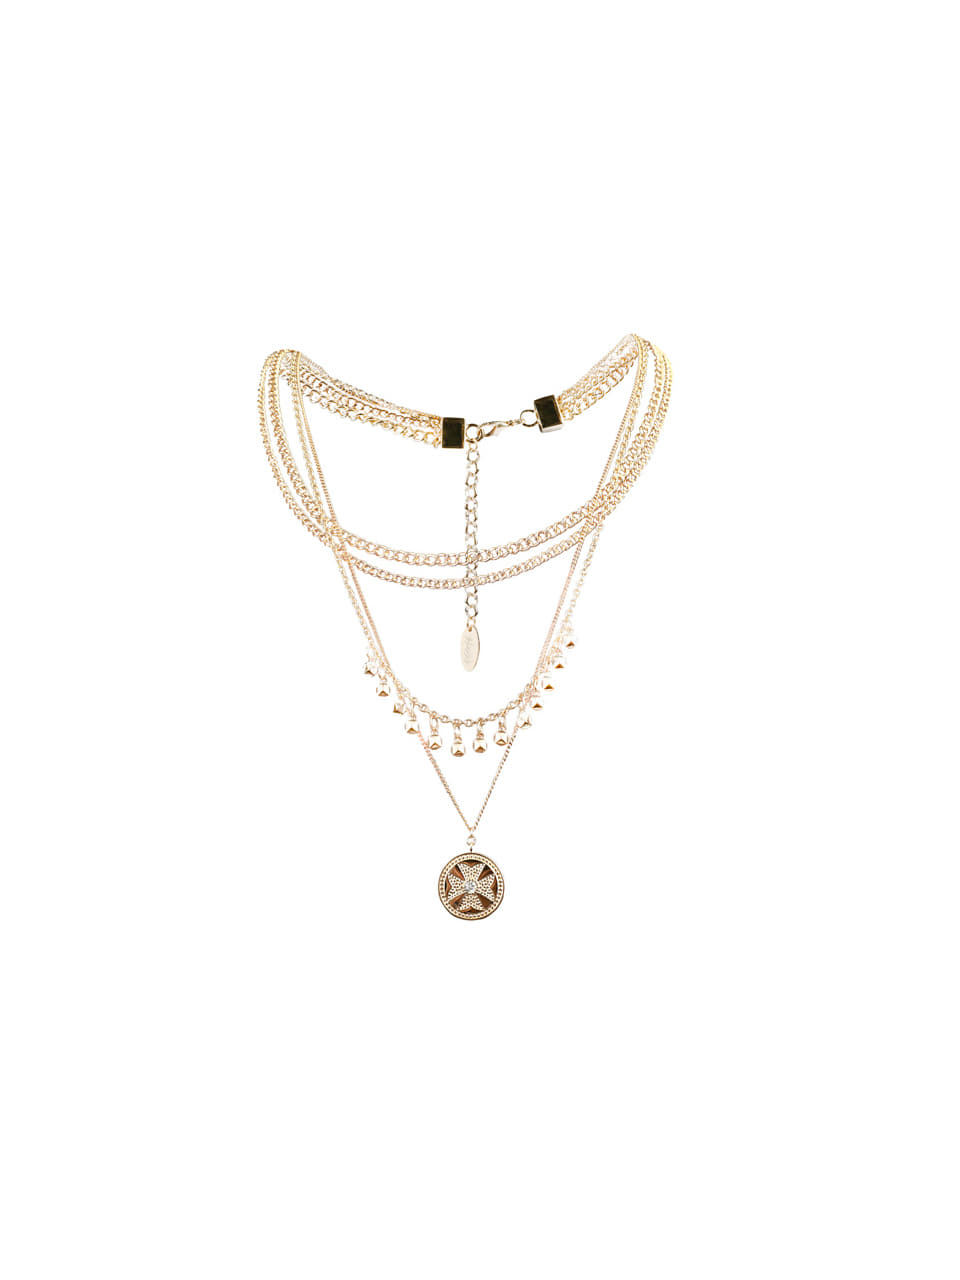 GUKAGold Clover Rayed Necklace